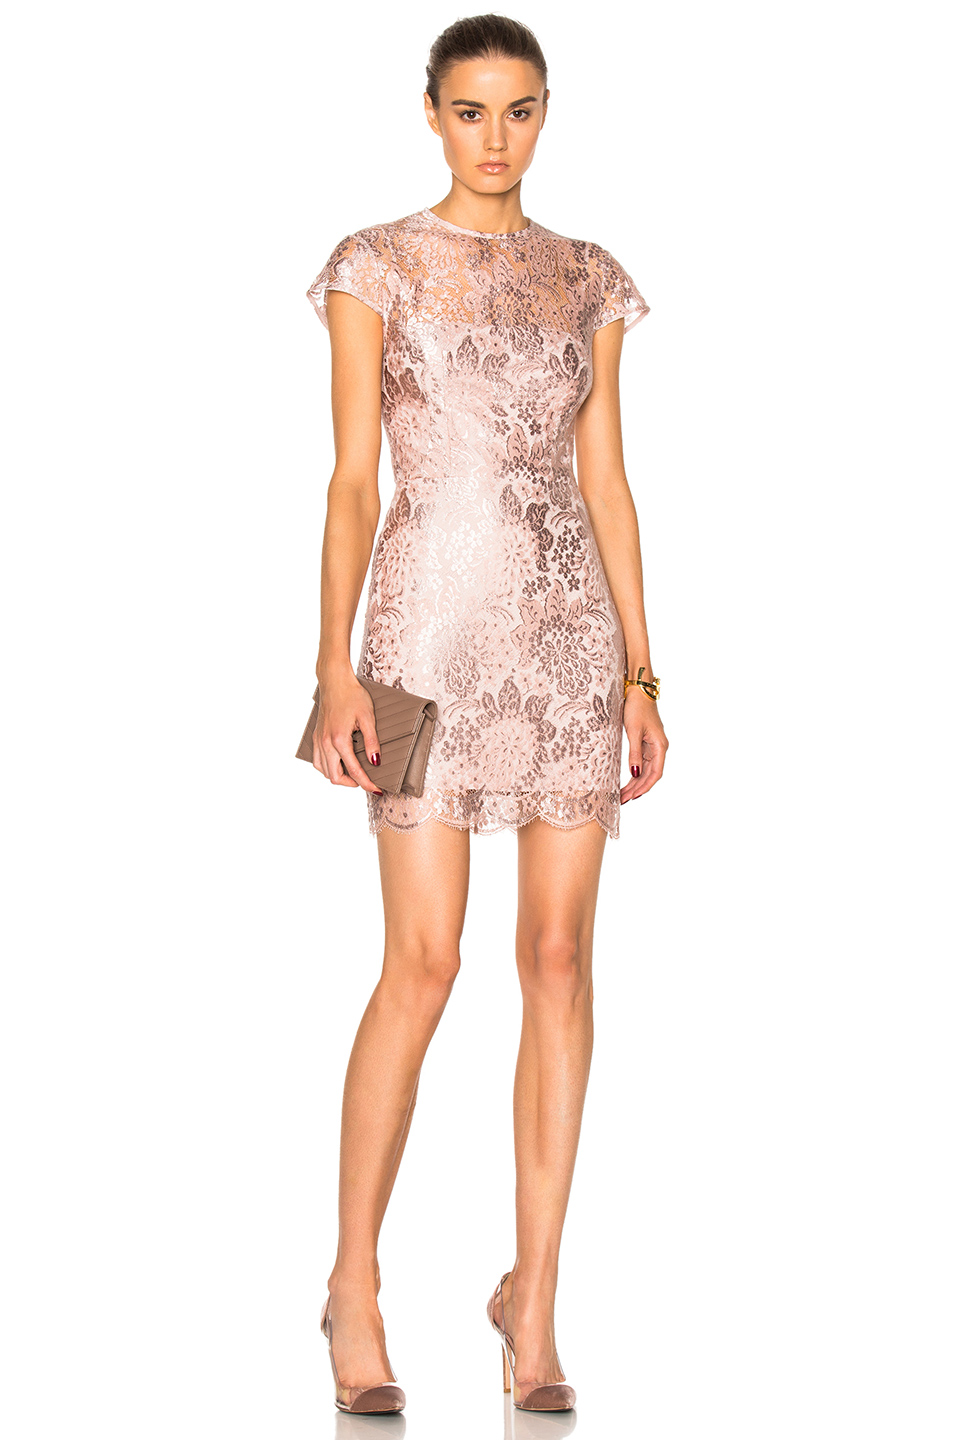 Lover Opium Fitted Mini Dress in Pink,Metallics